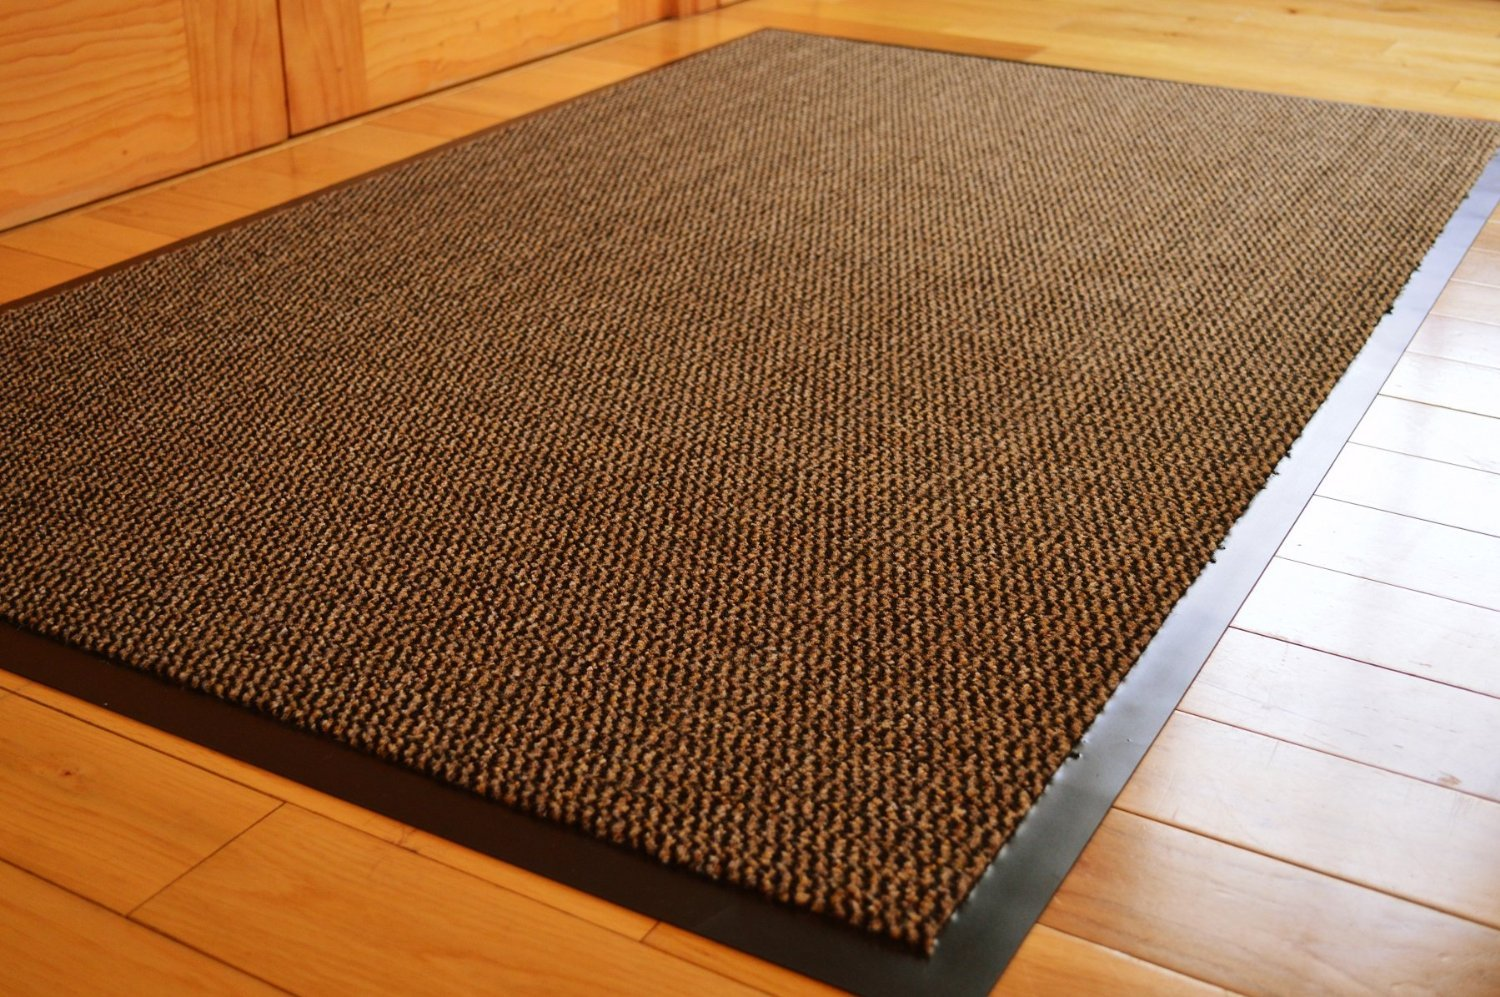 BARRIER MAT LARGE BROWN /BLACK DOOR MAT RUBBER BACKED MEDIUM RUNNER BARRIER  MATS RUG PVC EDGED KITCHEN MAT(90 X 150 CM): Amazon.co.uk: Kitchen U0026 Home